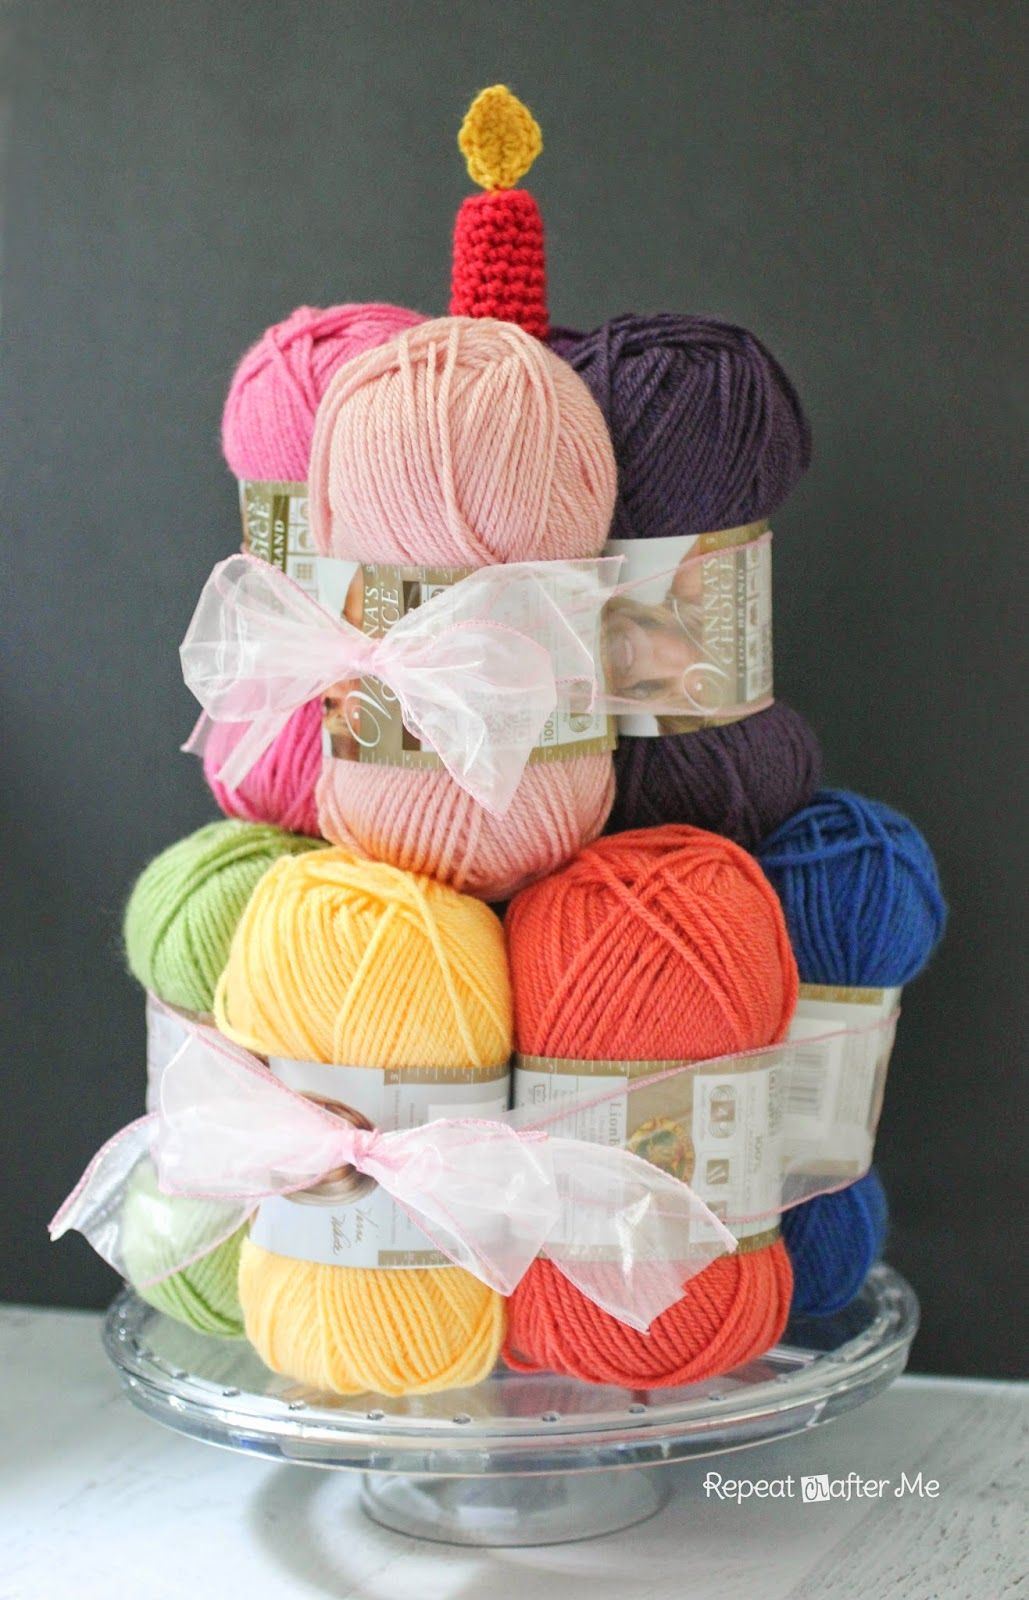 Yarn Cake with a Crochet Candle (Repeat Crafter Me) | happy 85th ...